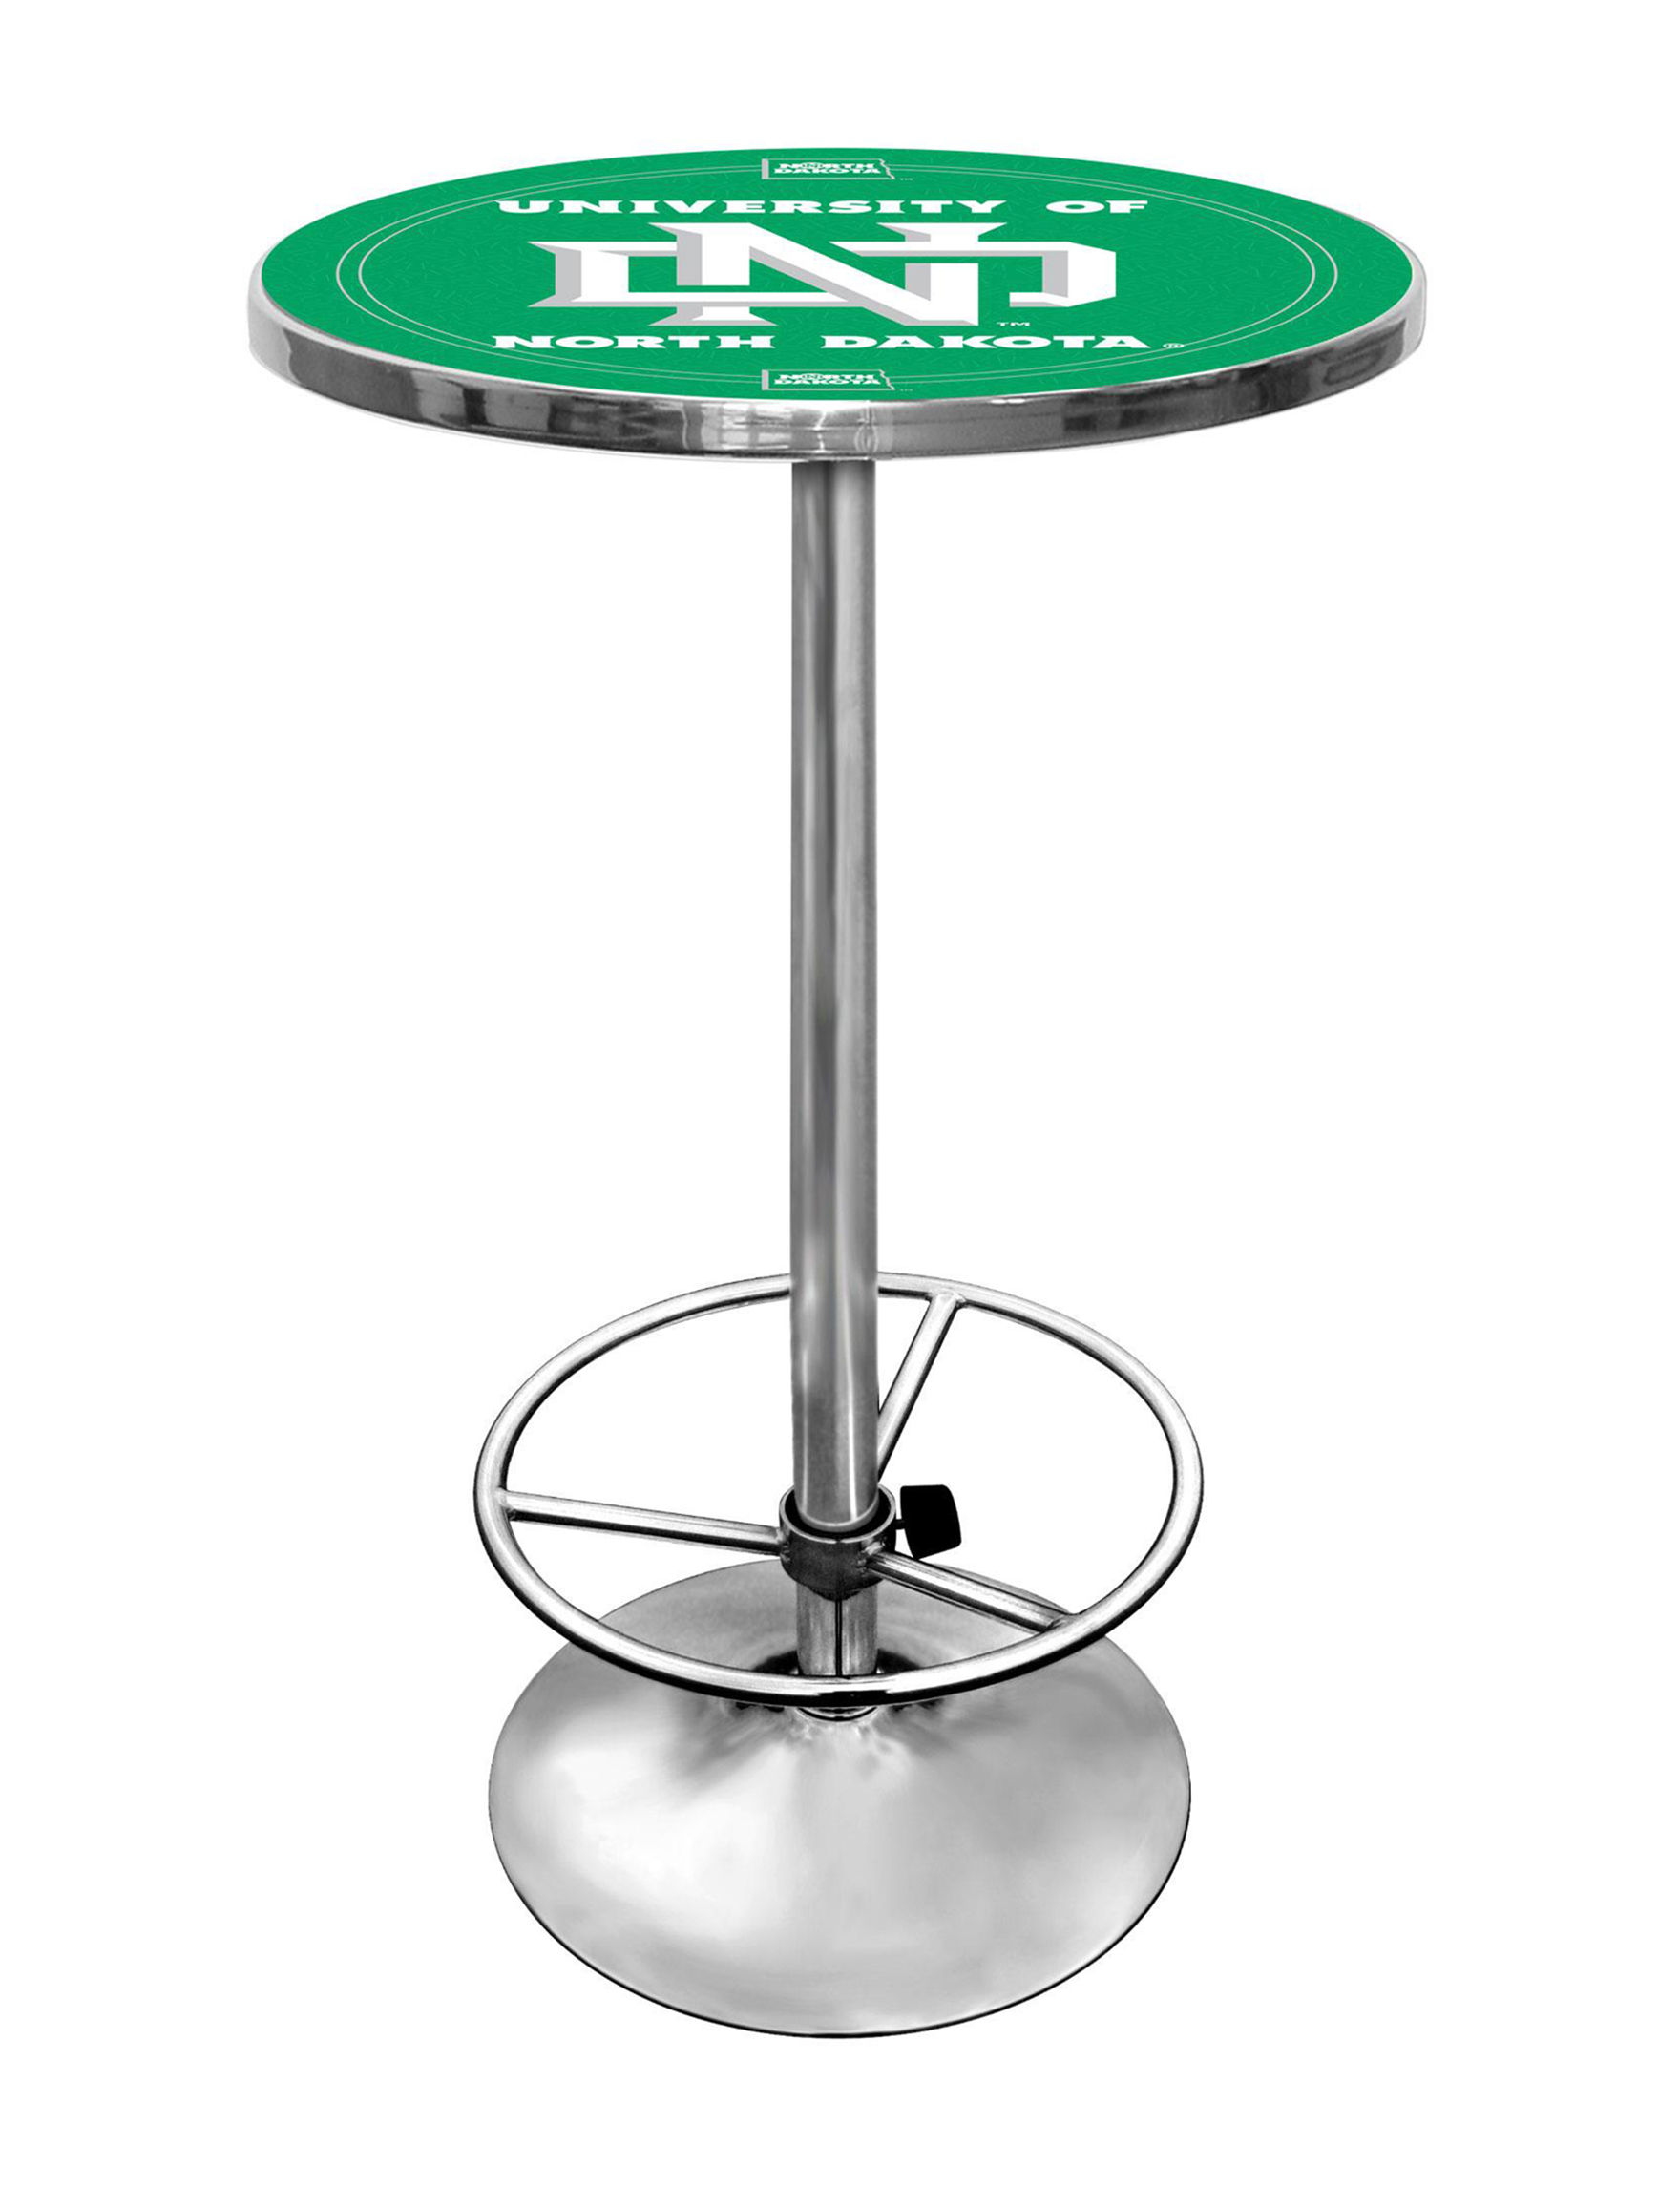 NCAA Green / White Dining Tables Kitchen & Dining Furniture NCAA